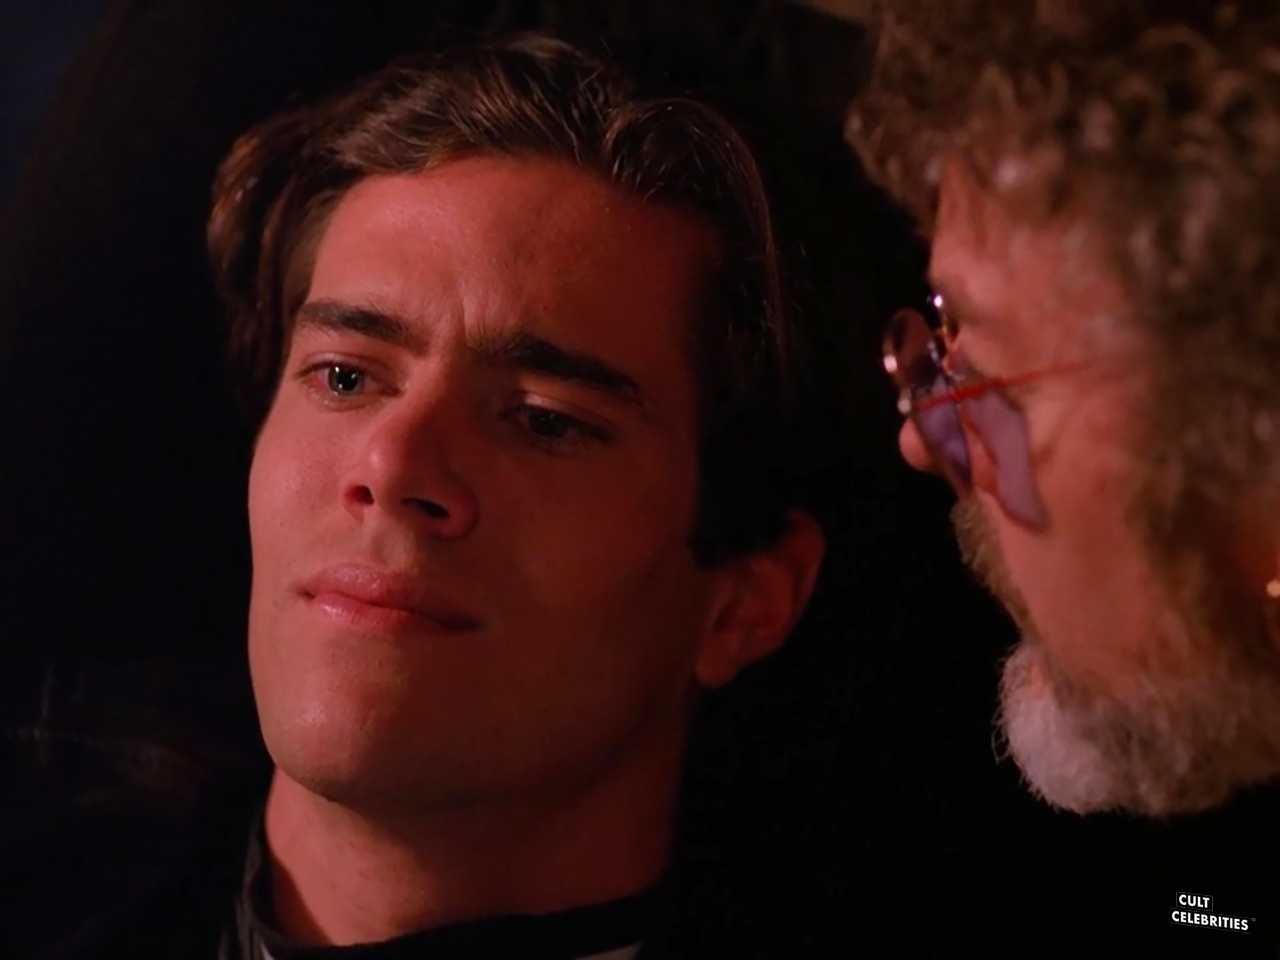 Dana Ashbrook and Russ Tamblyn in Twin Peaks (1990)